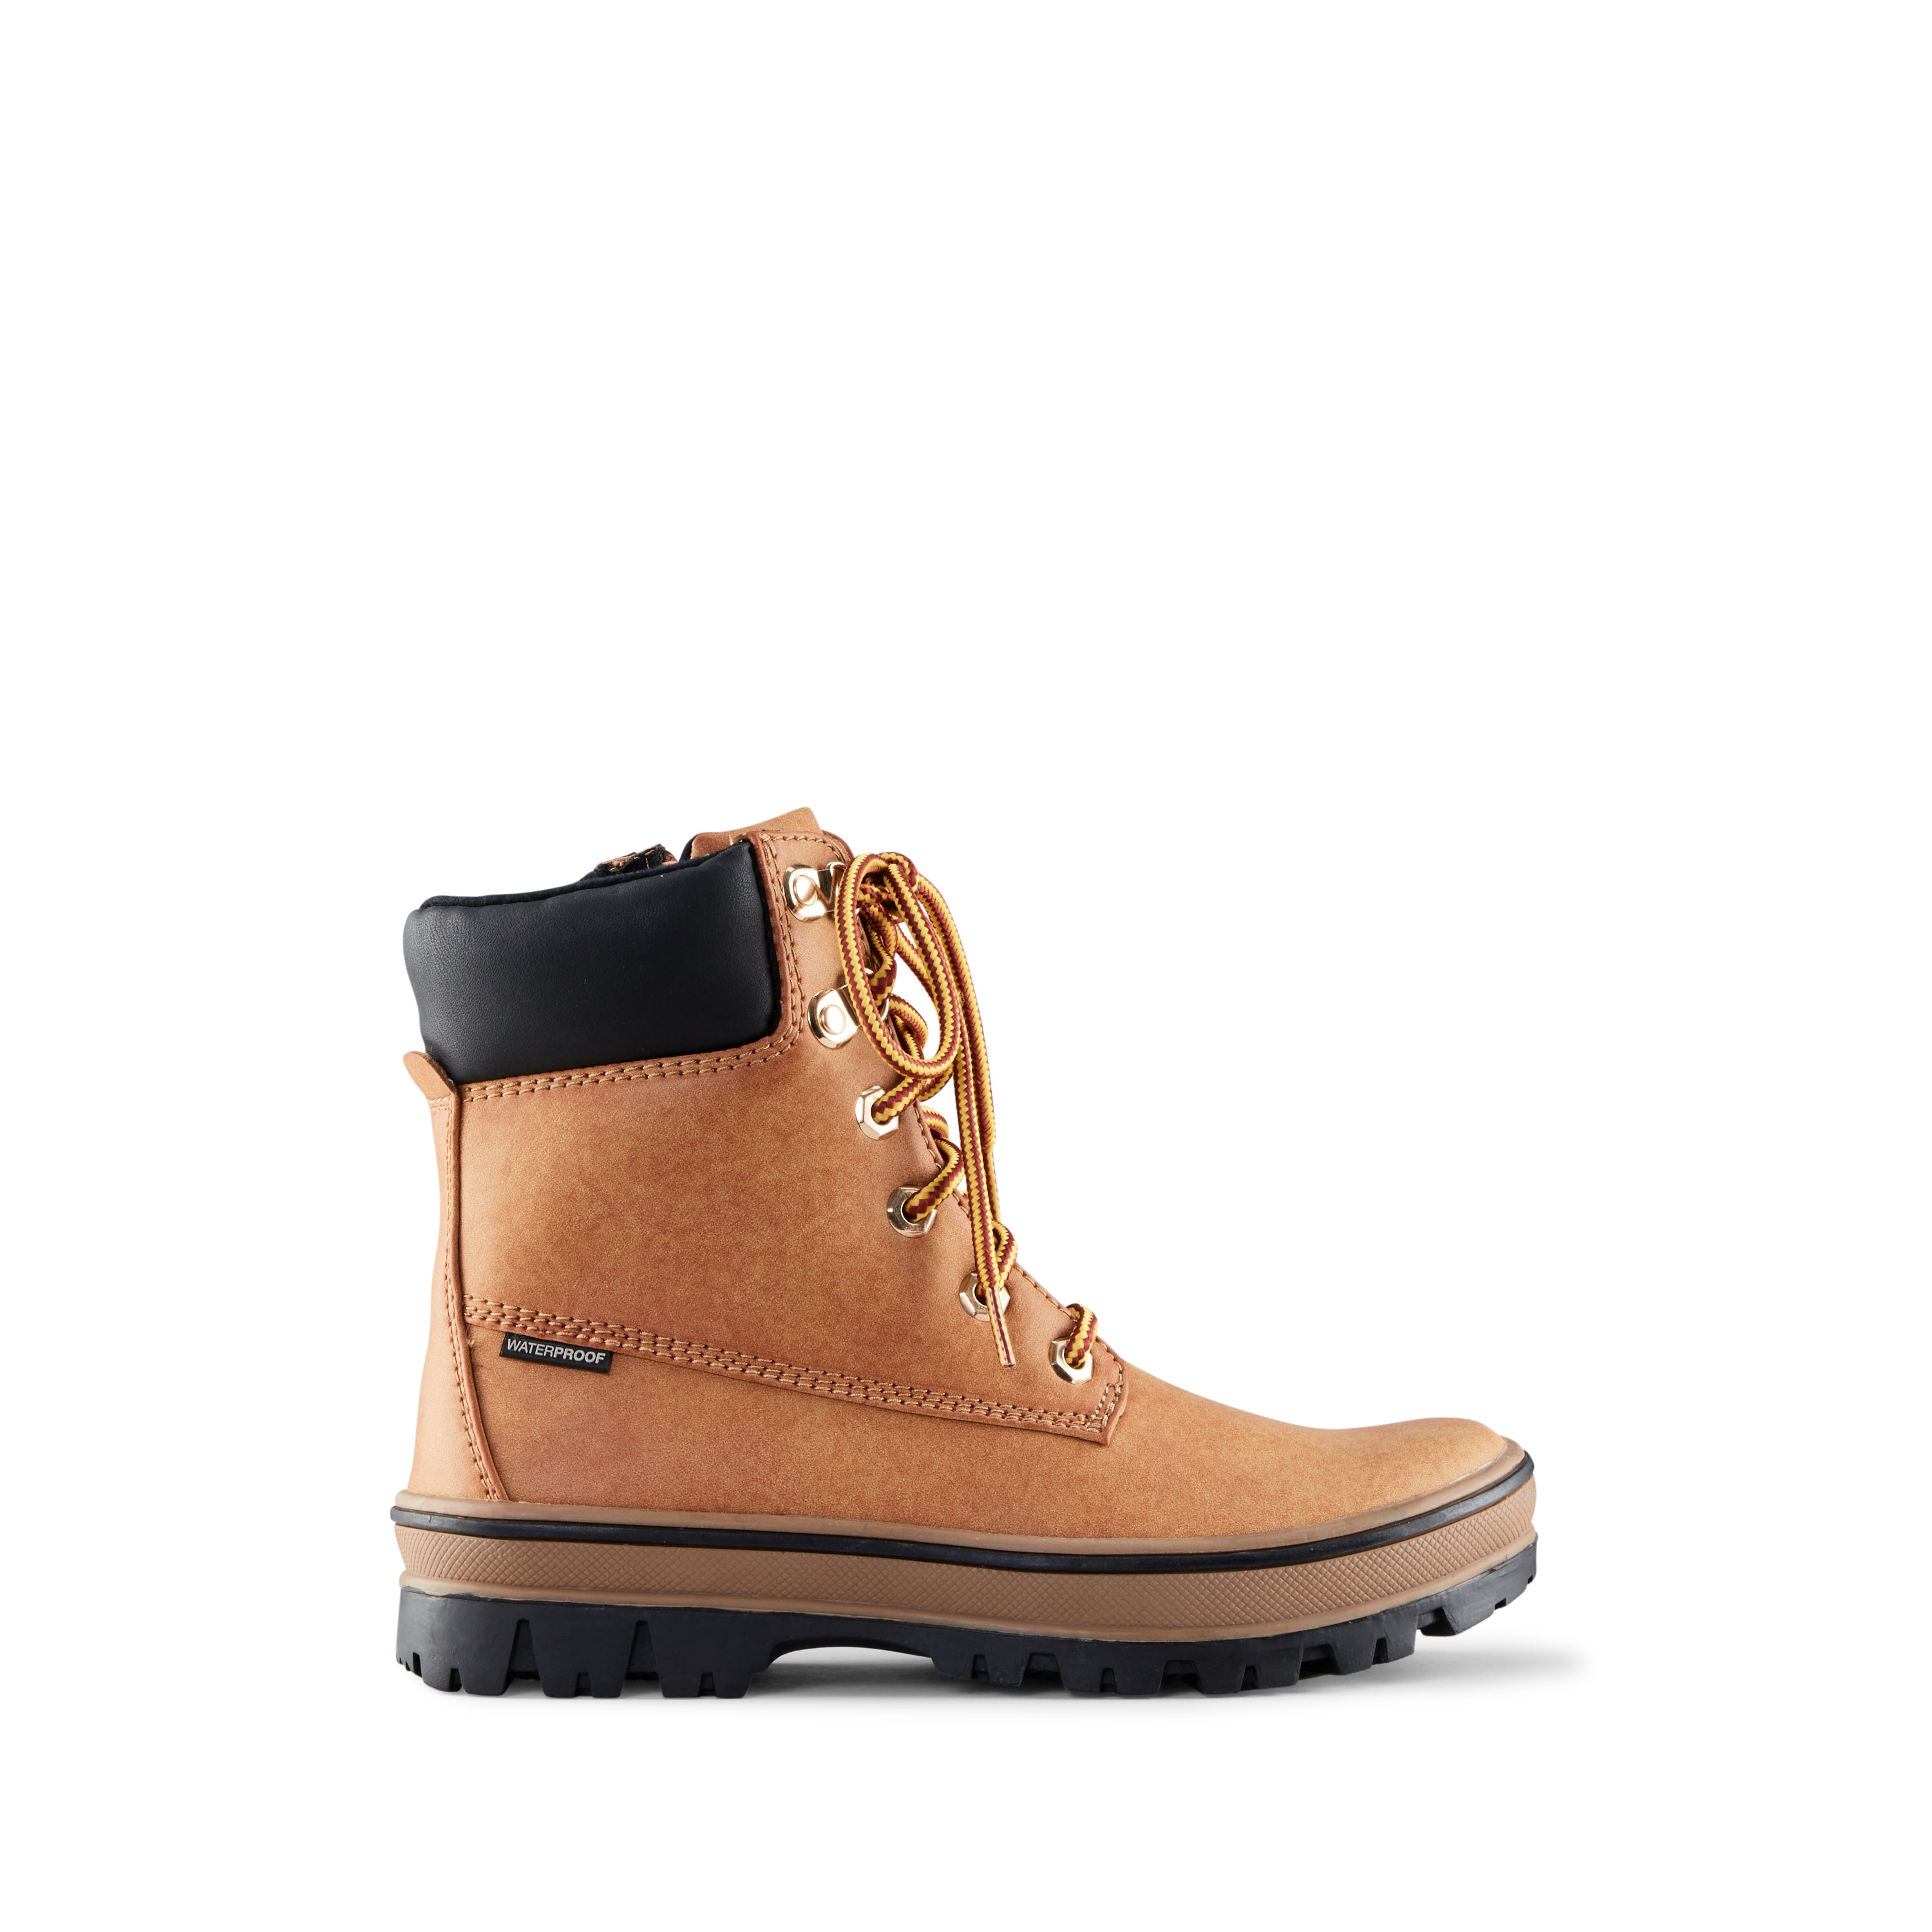 Cougar kid's boot brown inspired style with snow boot function. Thermolite insulation for added warmth.